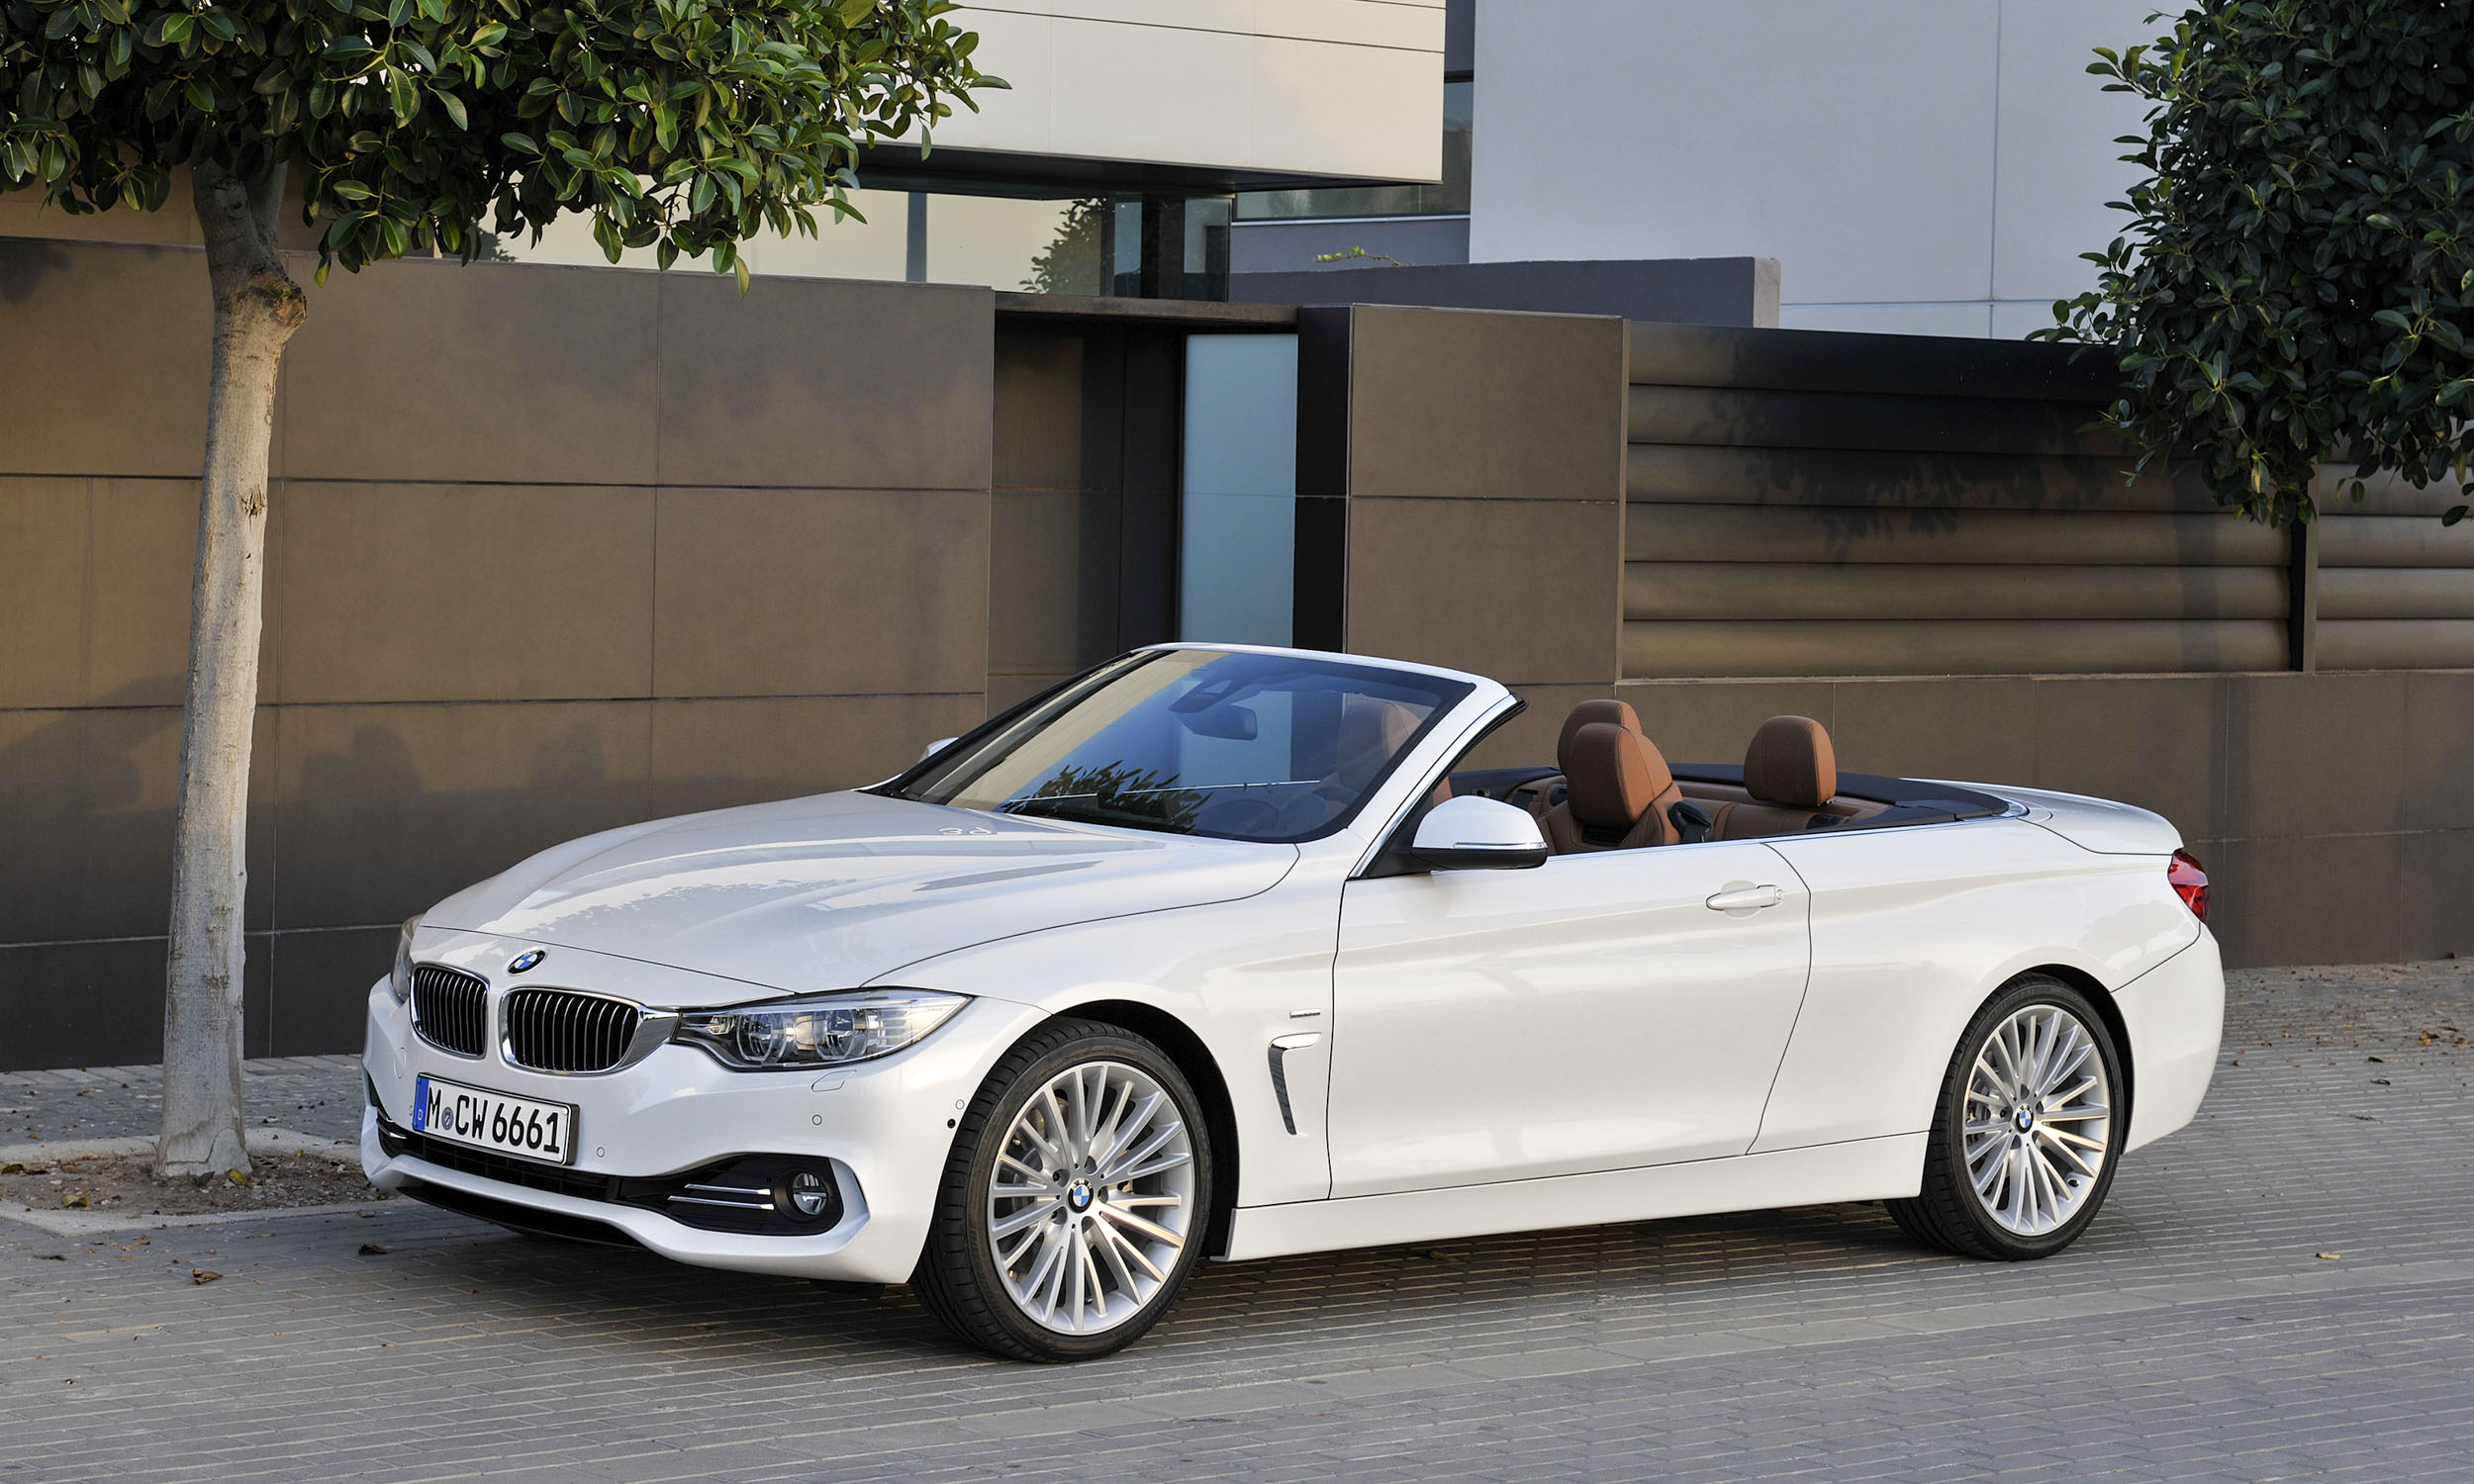 Drop Tops For Hot Spots Convertibles For Summer Driving